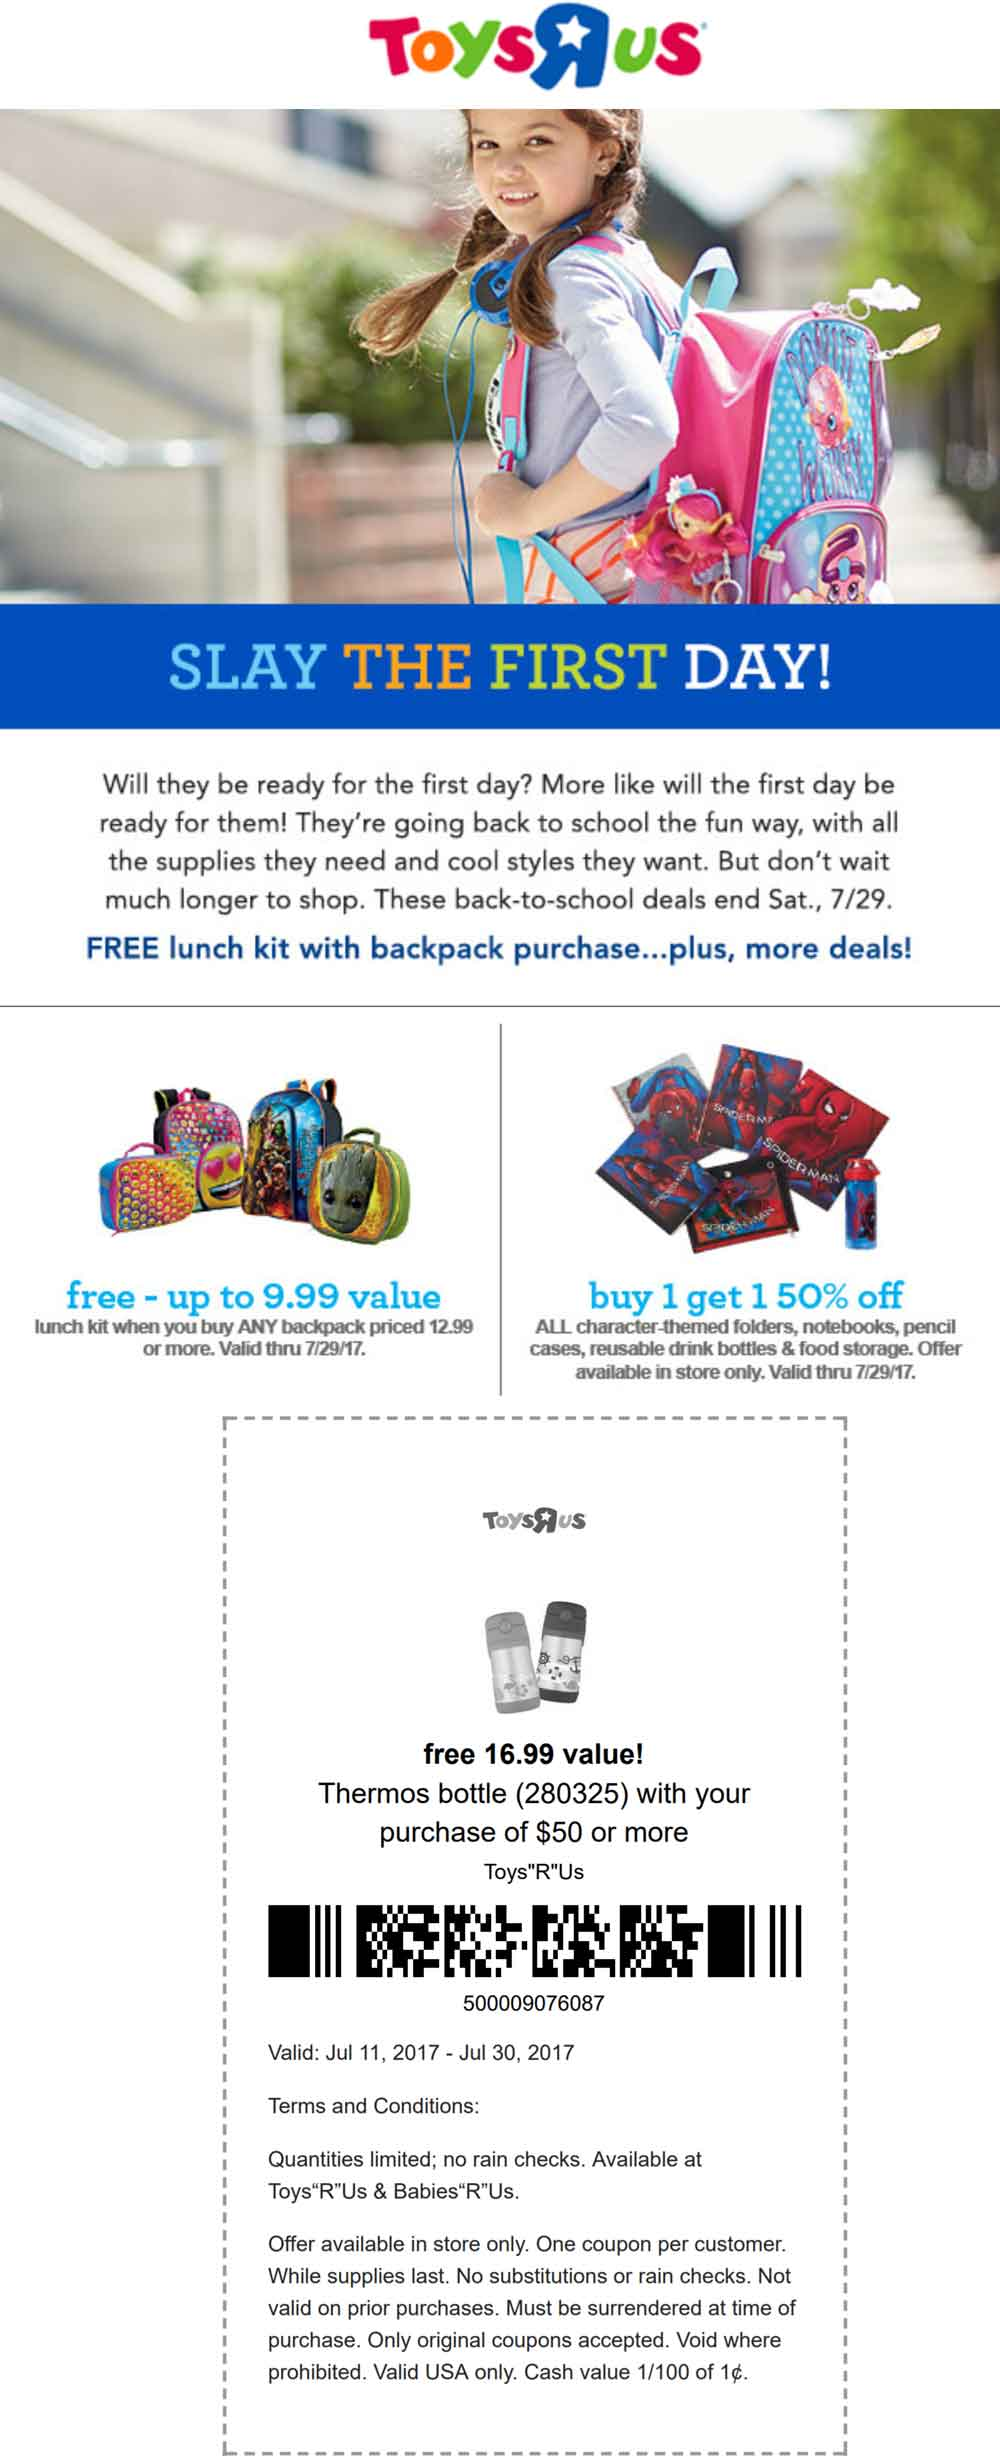 Toys R Us Coupon October 2018 $17 thermos free with $50 spent, free lunch box with any backpack at Toys R Us